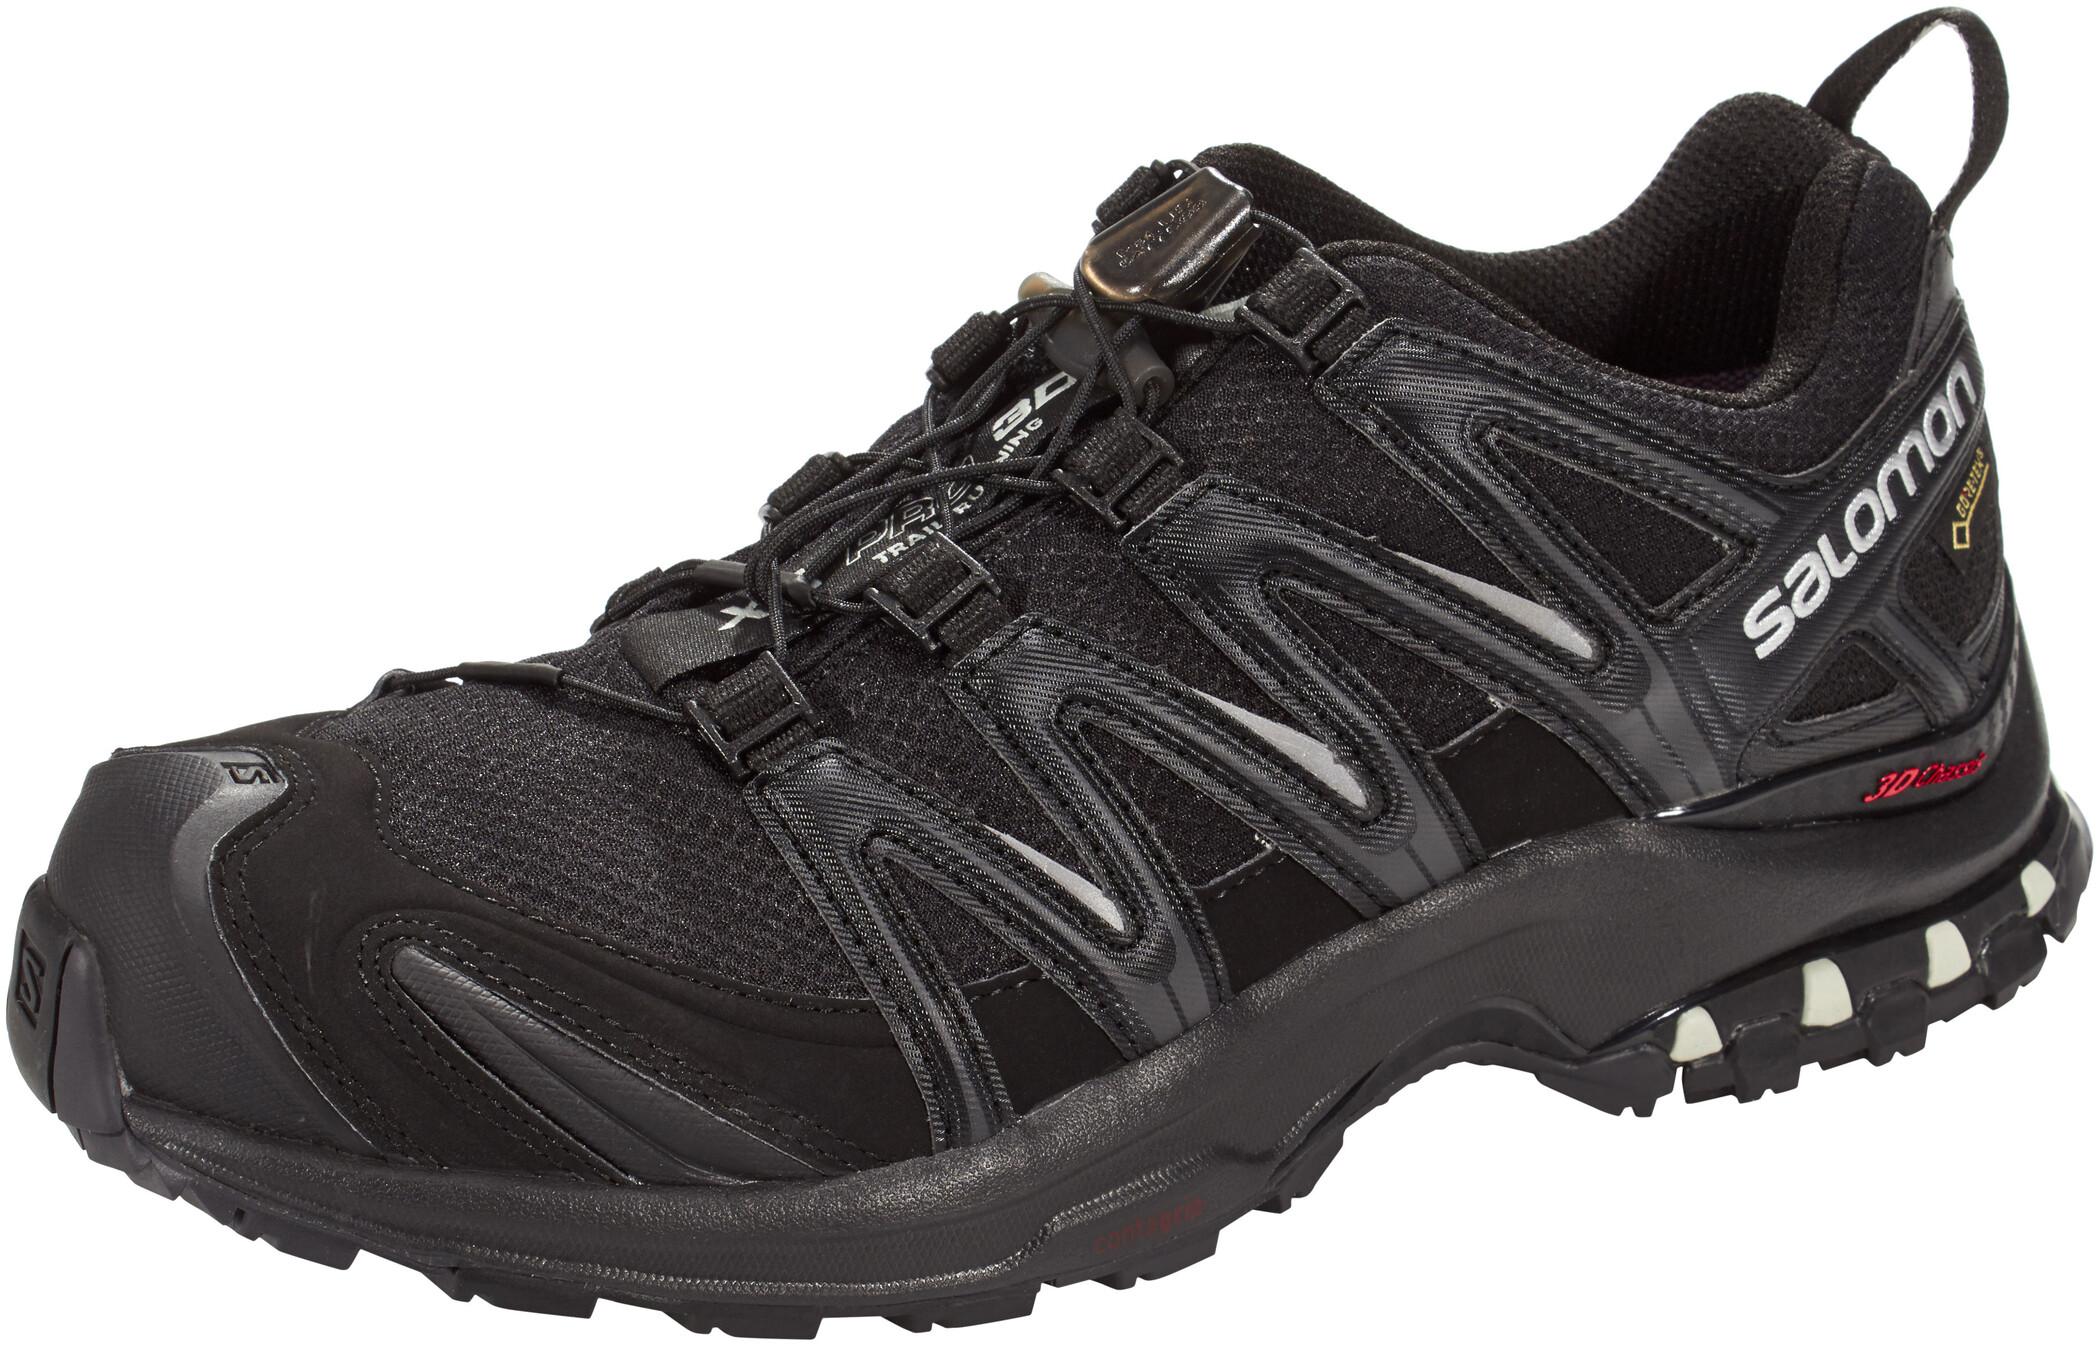 Salomon XA Pro 3D GTX Trailrunning Schuhe Damen blackblackmineral grey